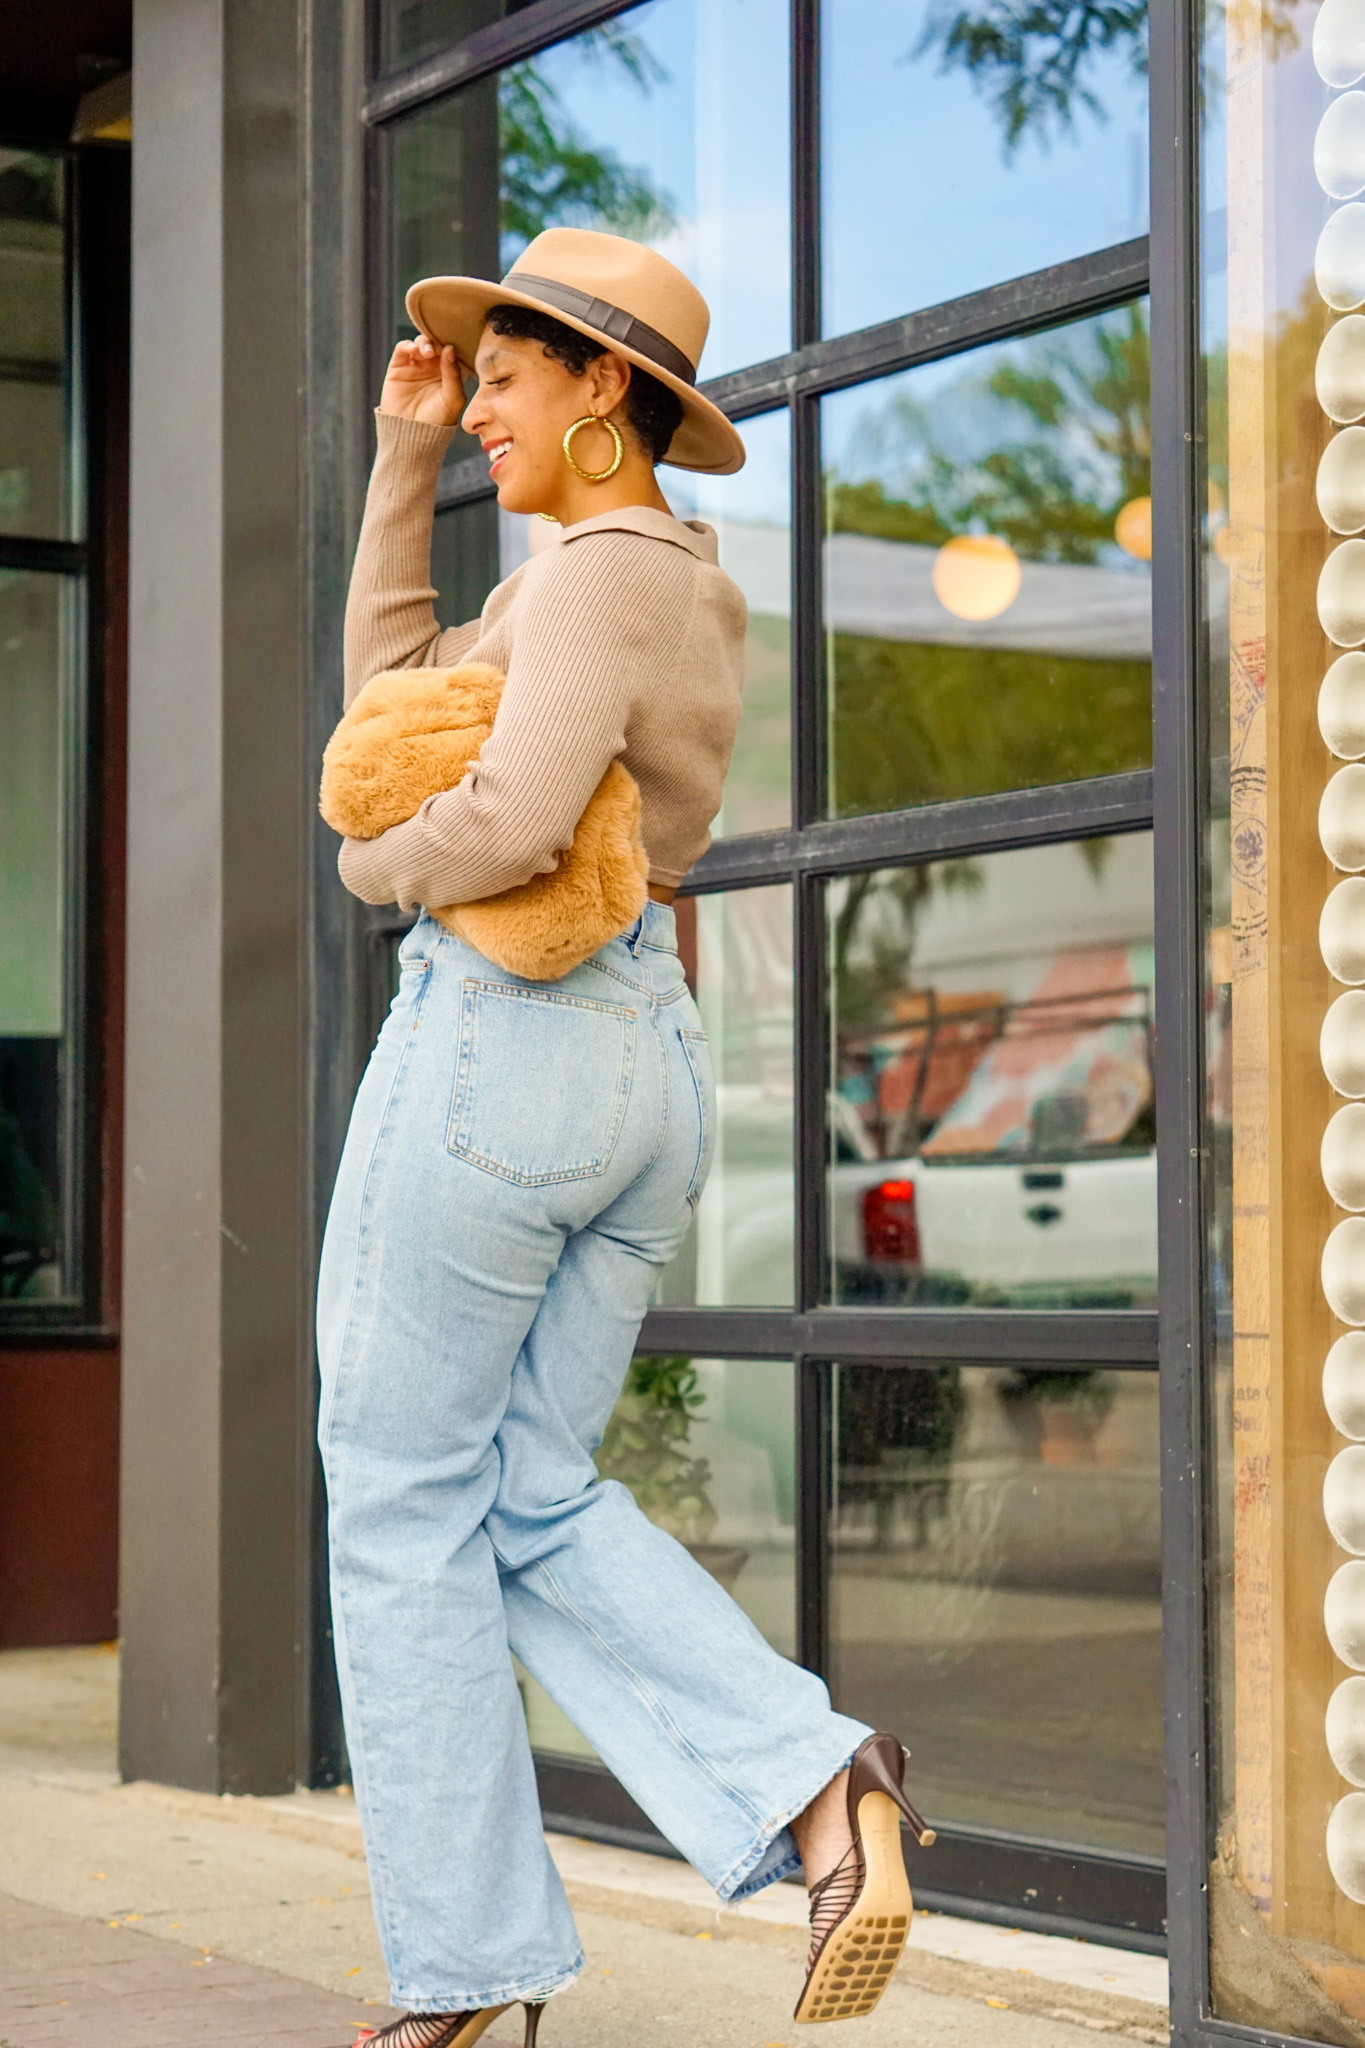 cropped sweater outfit for pear shaped women, where to shop for cropped sweaters, black girl fashion blogger, beige sweater, black fashion blogger outfit